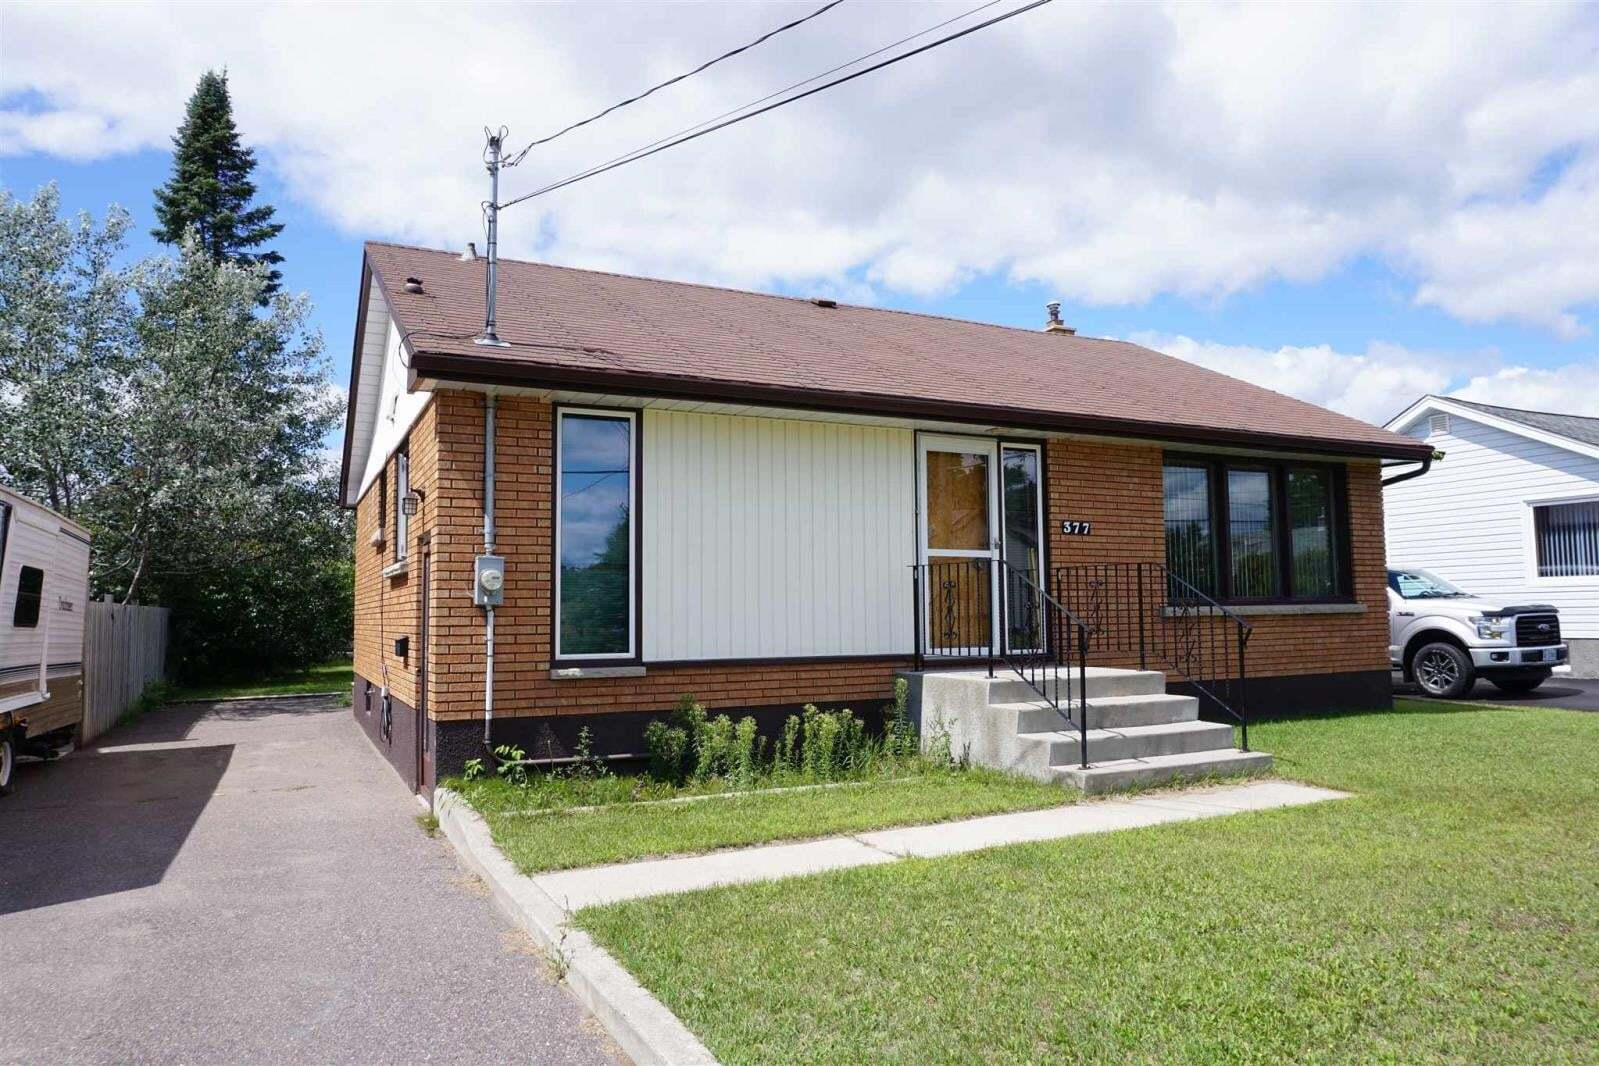 House for sale at 377 Otto St. Thunder Bay Ontario - MLS: TB201842